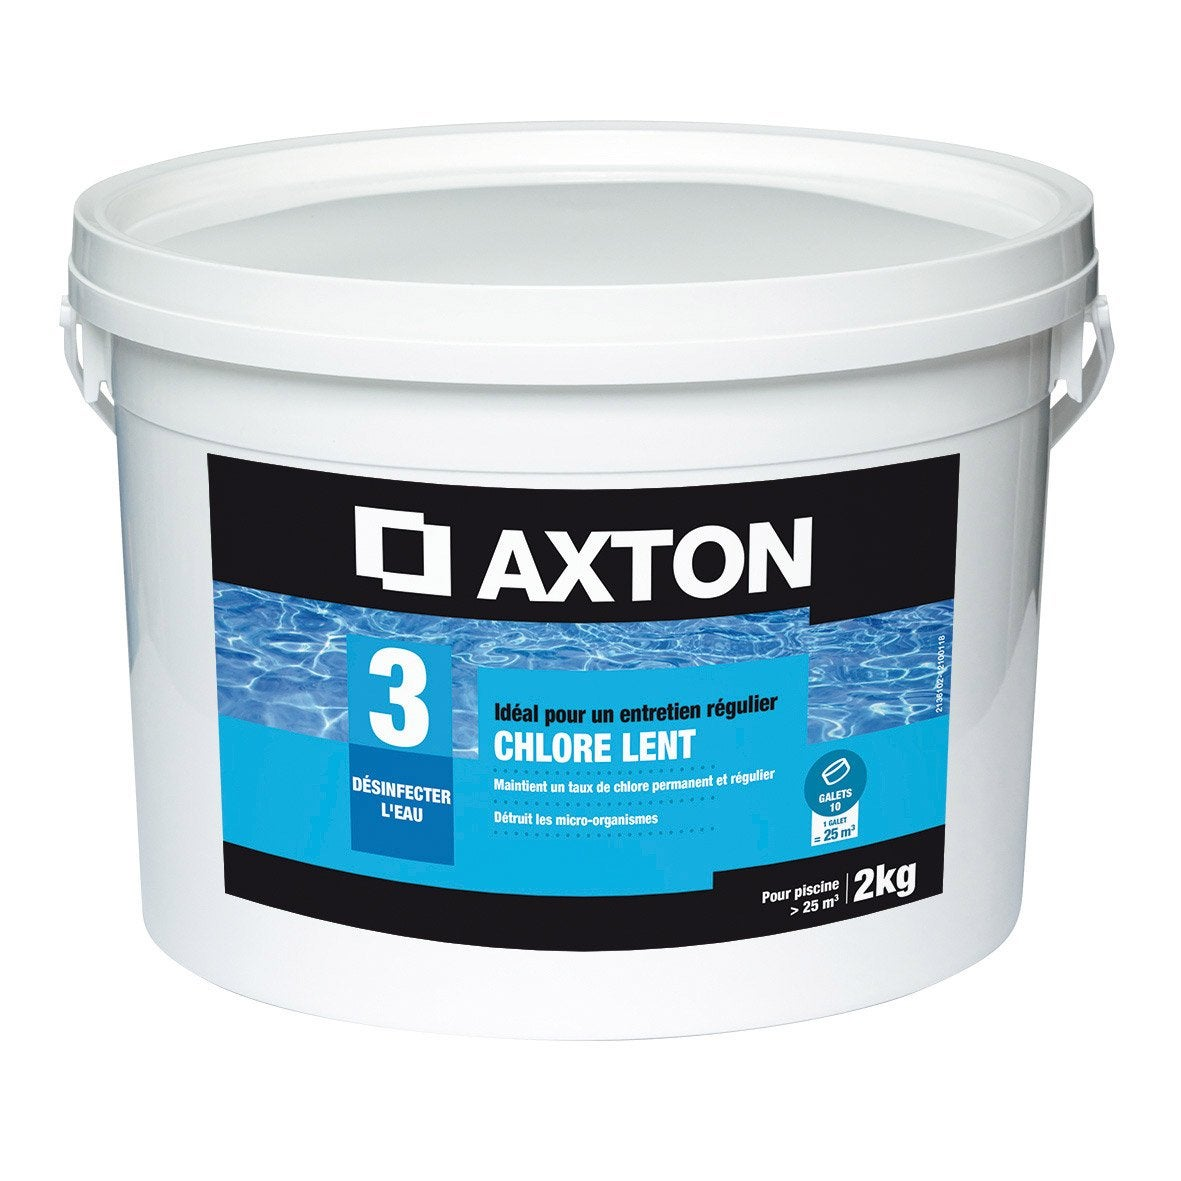 Chlore lent piscine axton galet 1 l 2 kg leroy merlin for Chlore piscine